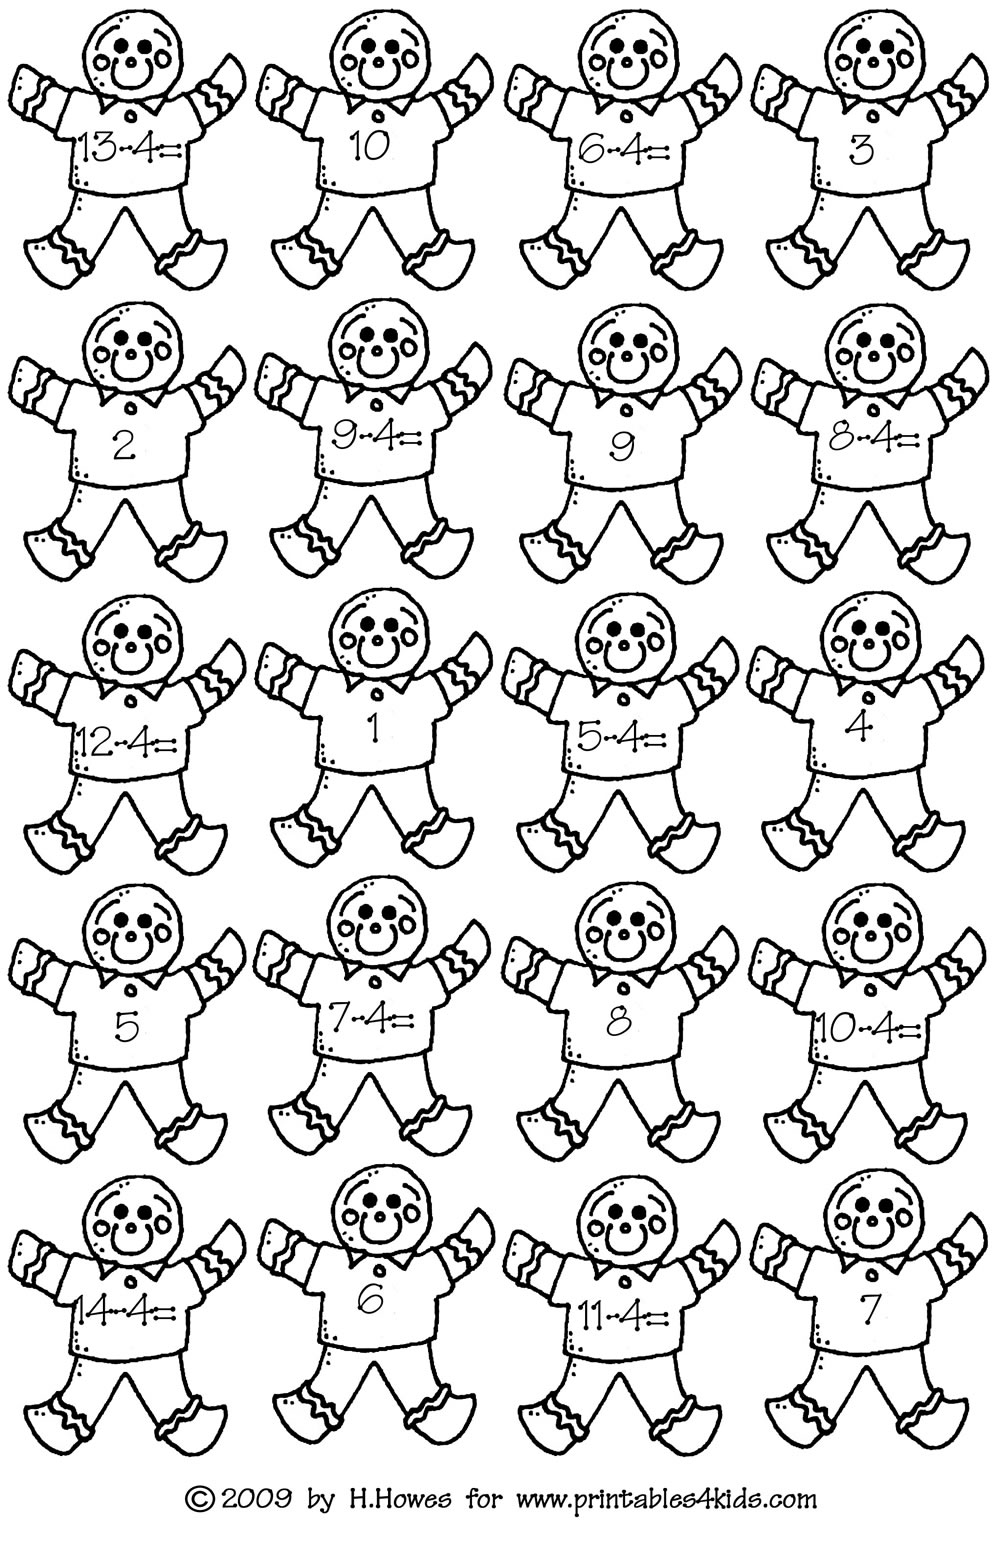 Gingerbread Math Subtraction 4s : Printables for Kids